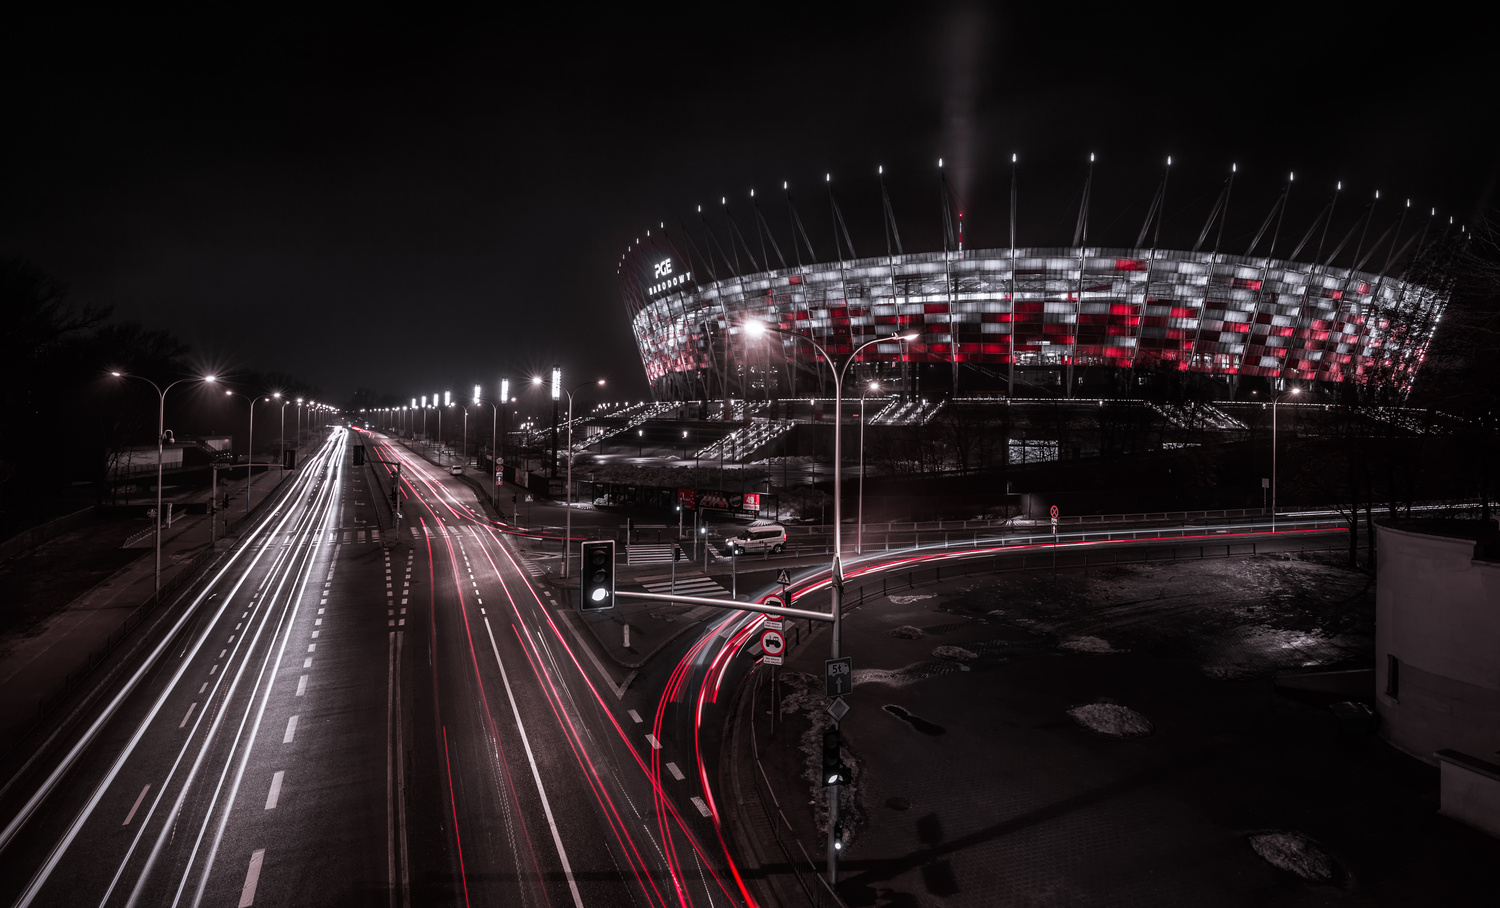 PGE Narodowy - National Stadium by Lukas Petereit